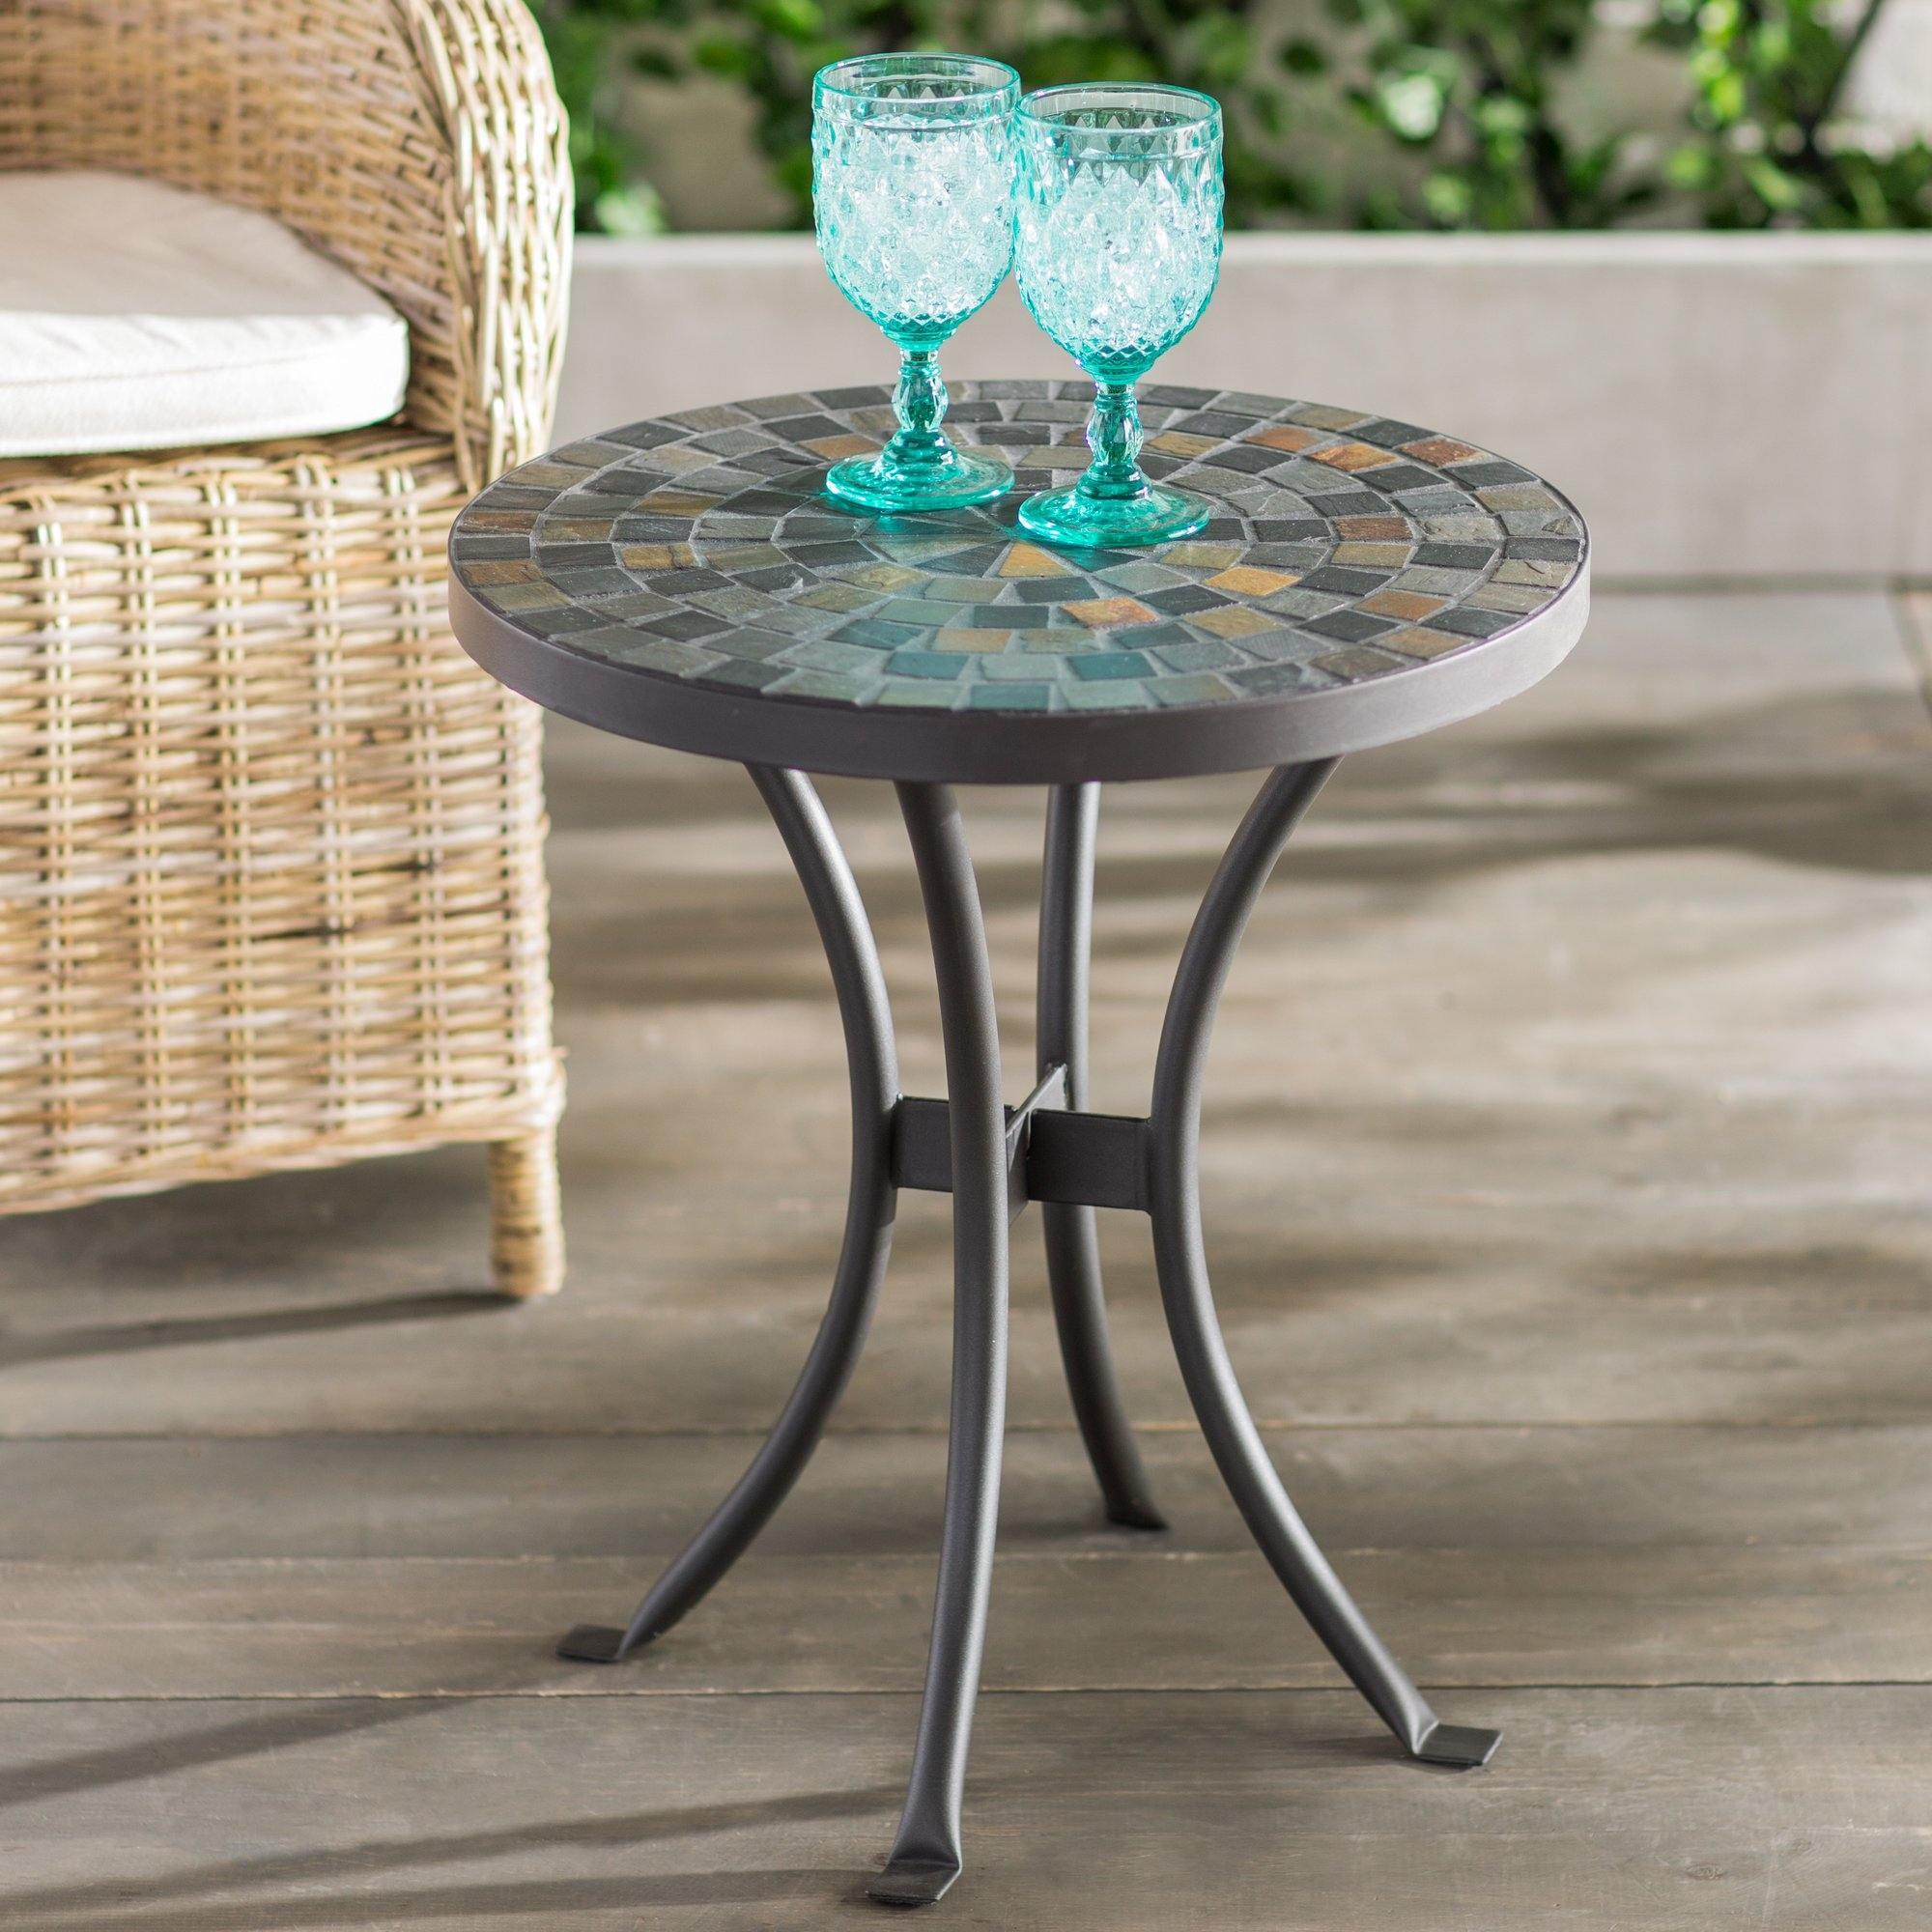 mosaic accent table outdoor design ideas brie side beachcrest home res kohls round coffee tables for small patio mirrored console cabinet black and white striped umbrella dining